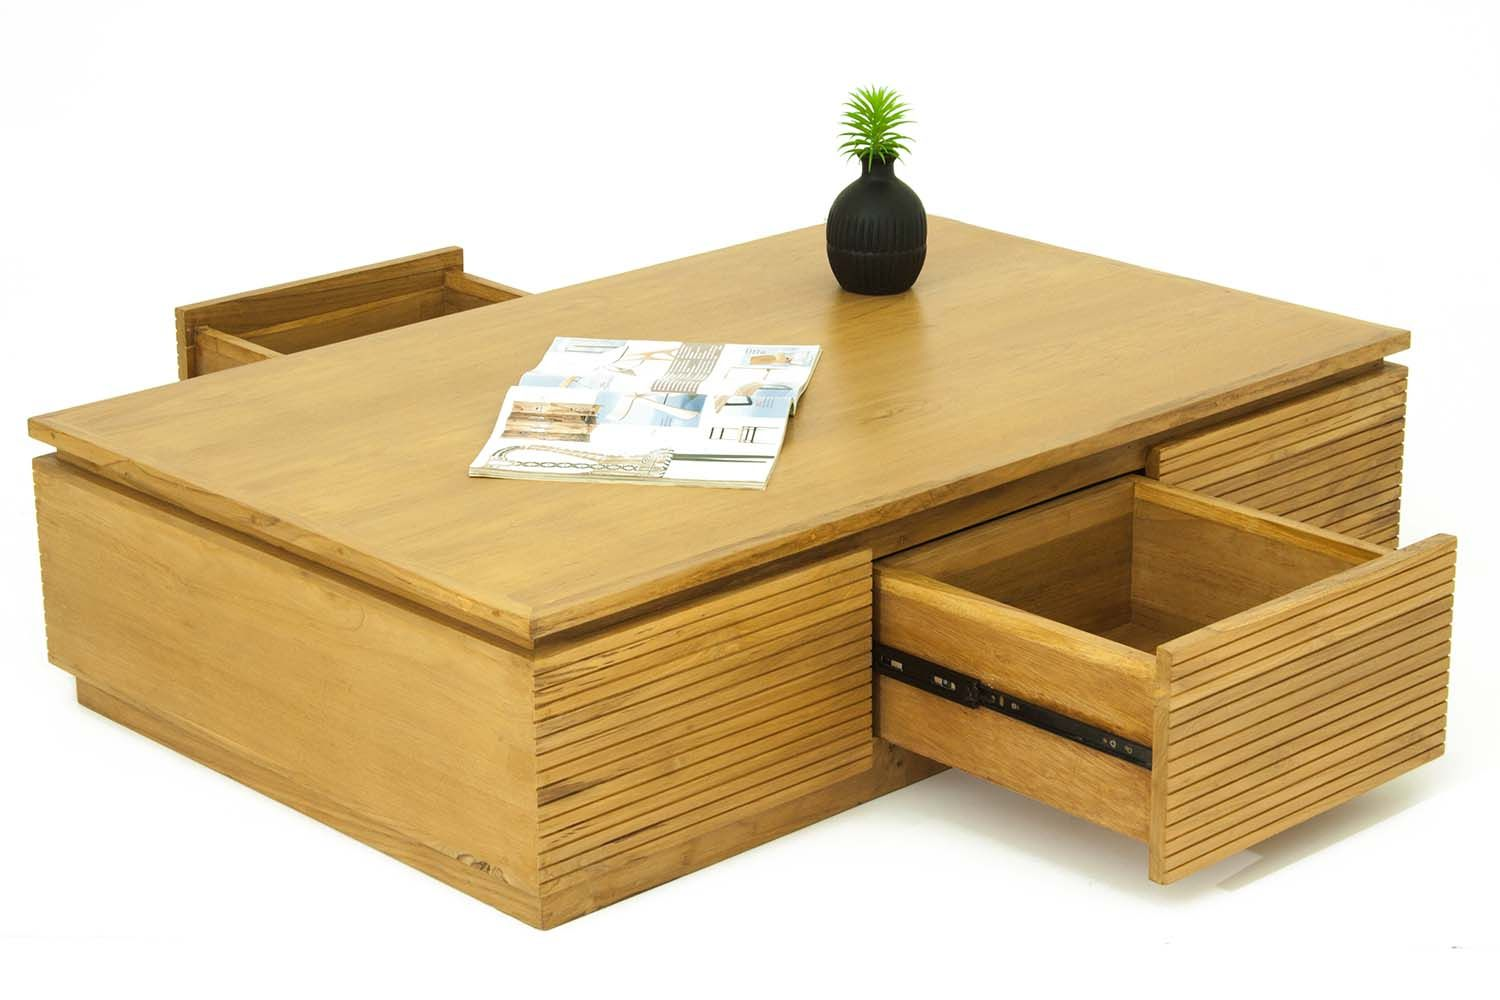 Meuble Teck Salon Table Basse Salon 3 Tiroirs En Teck Massif